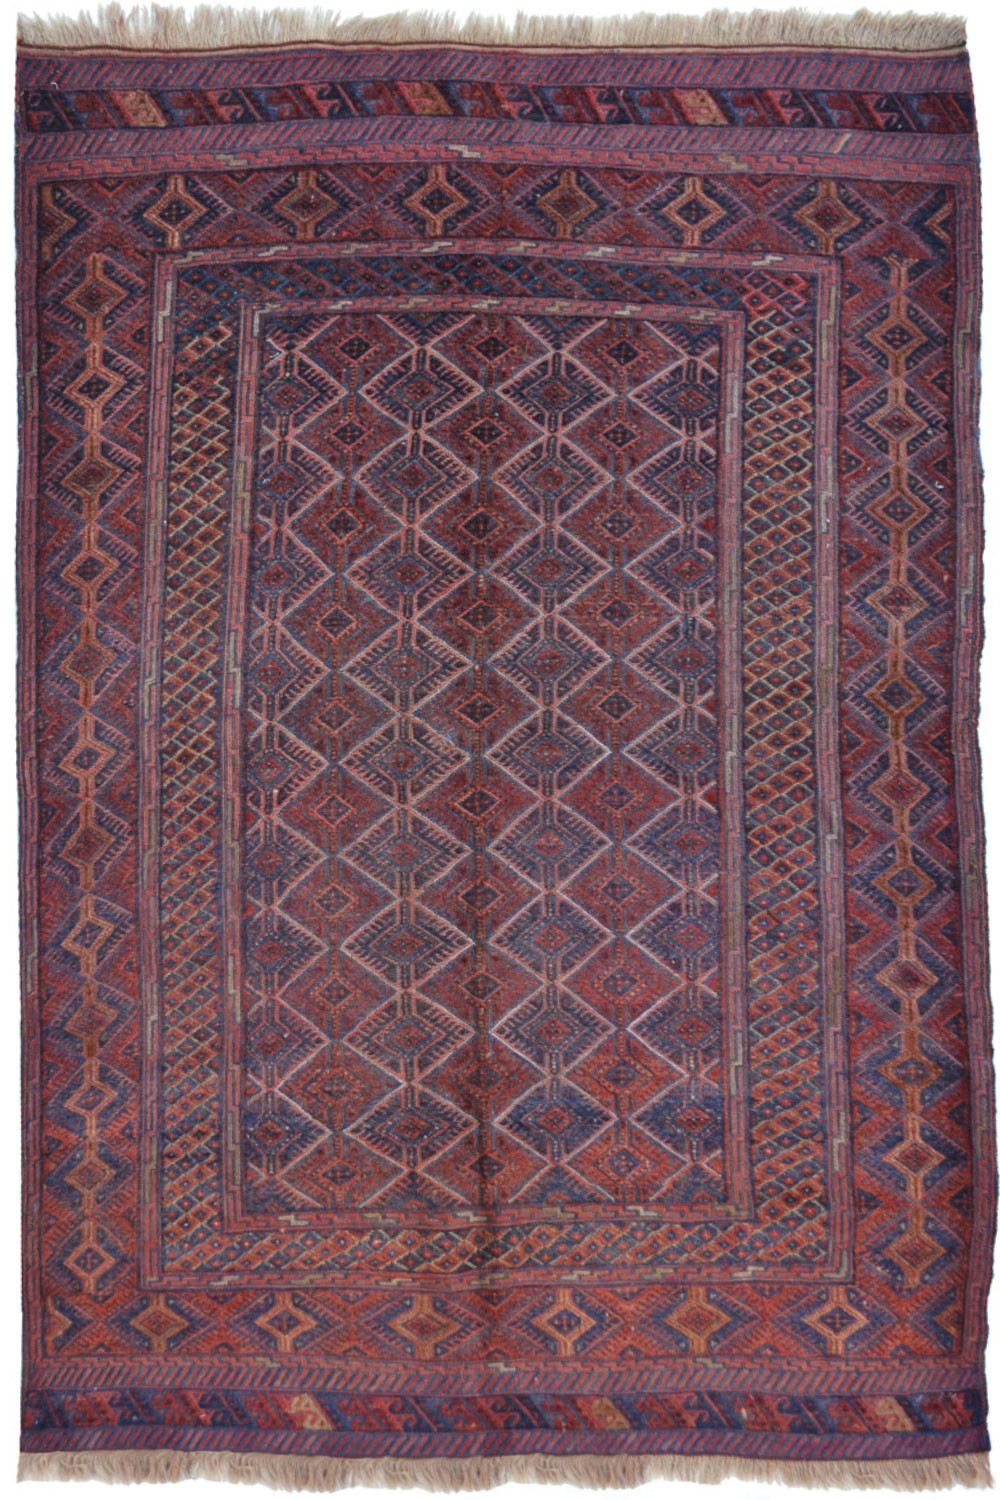 Shop Quot One Of A Kind Quot Muska Kilim Flat Woven Area Rug From